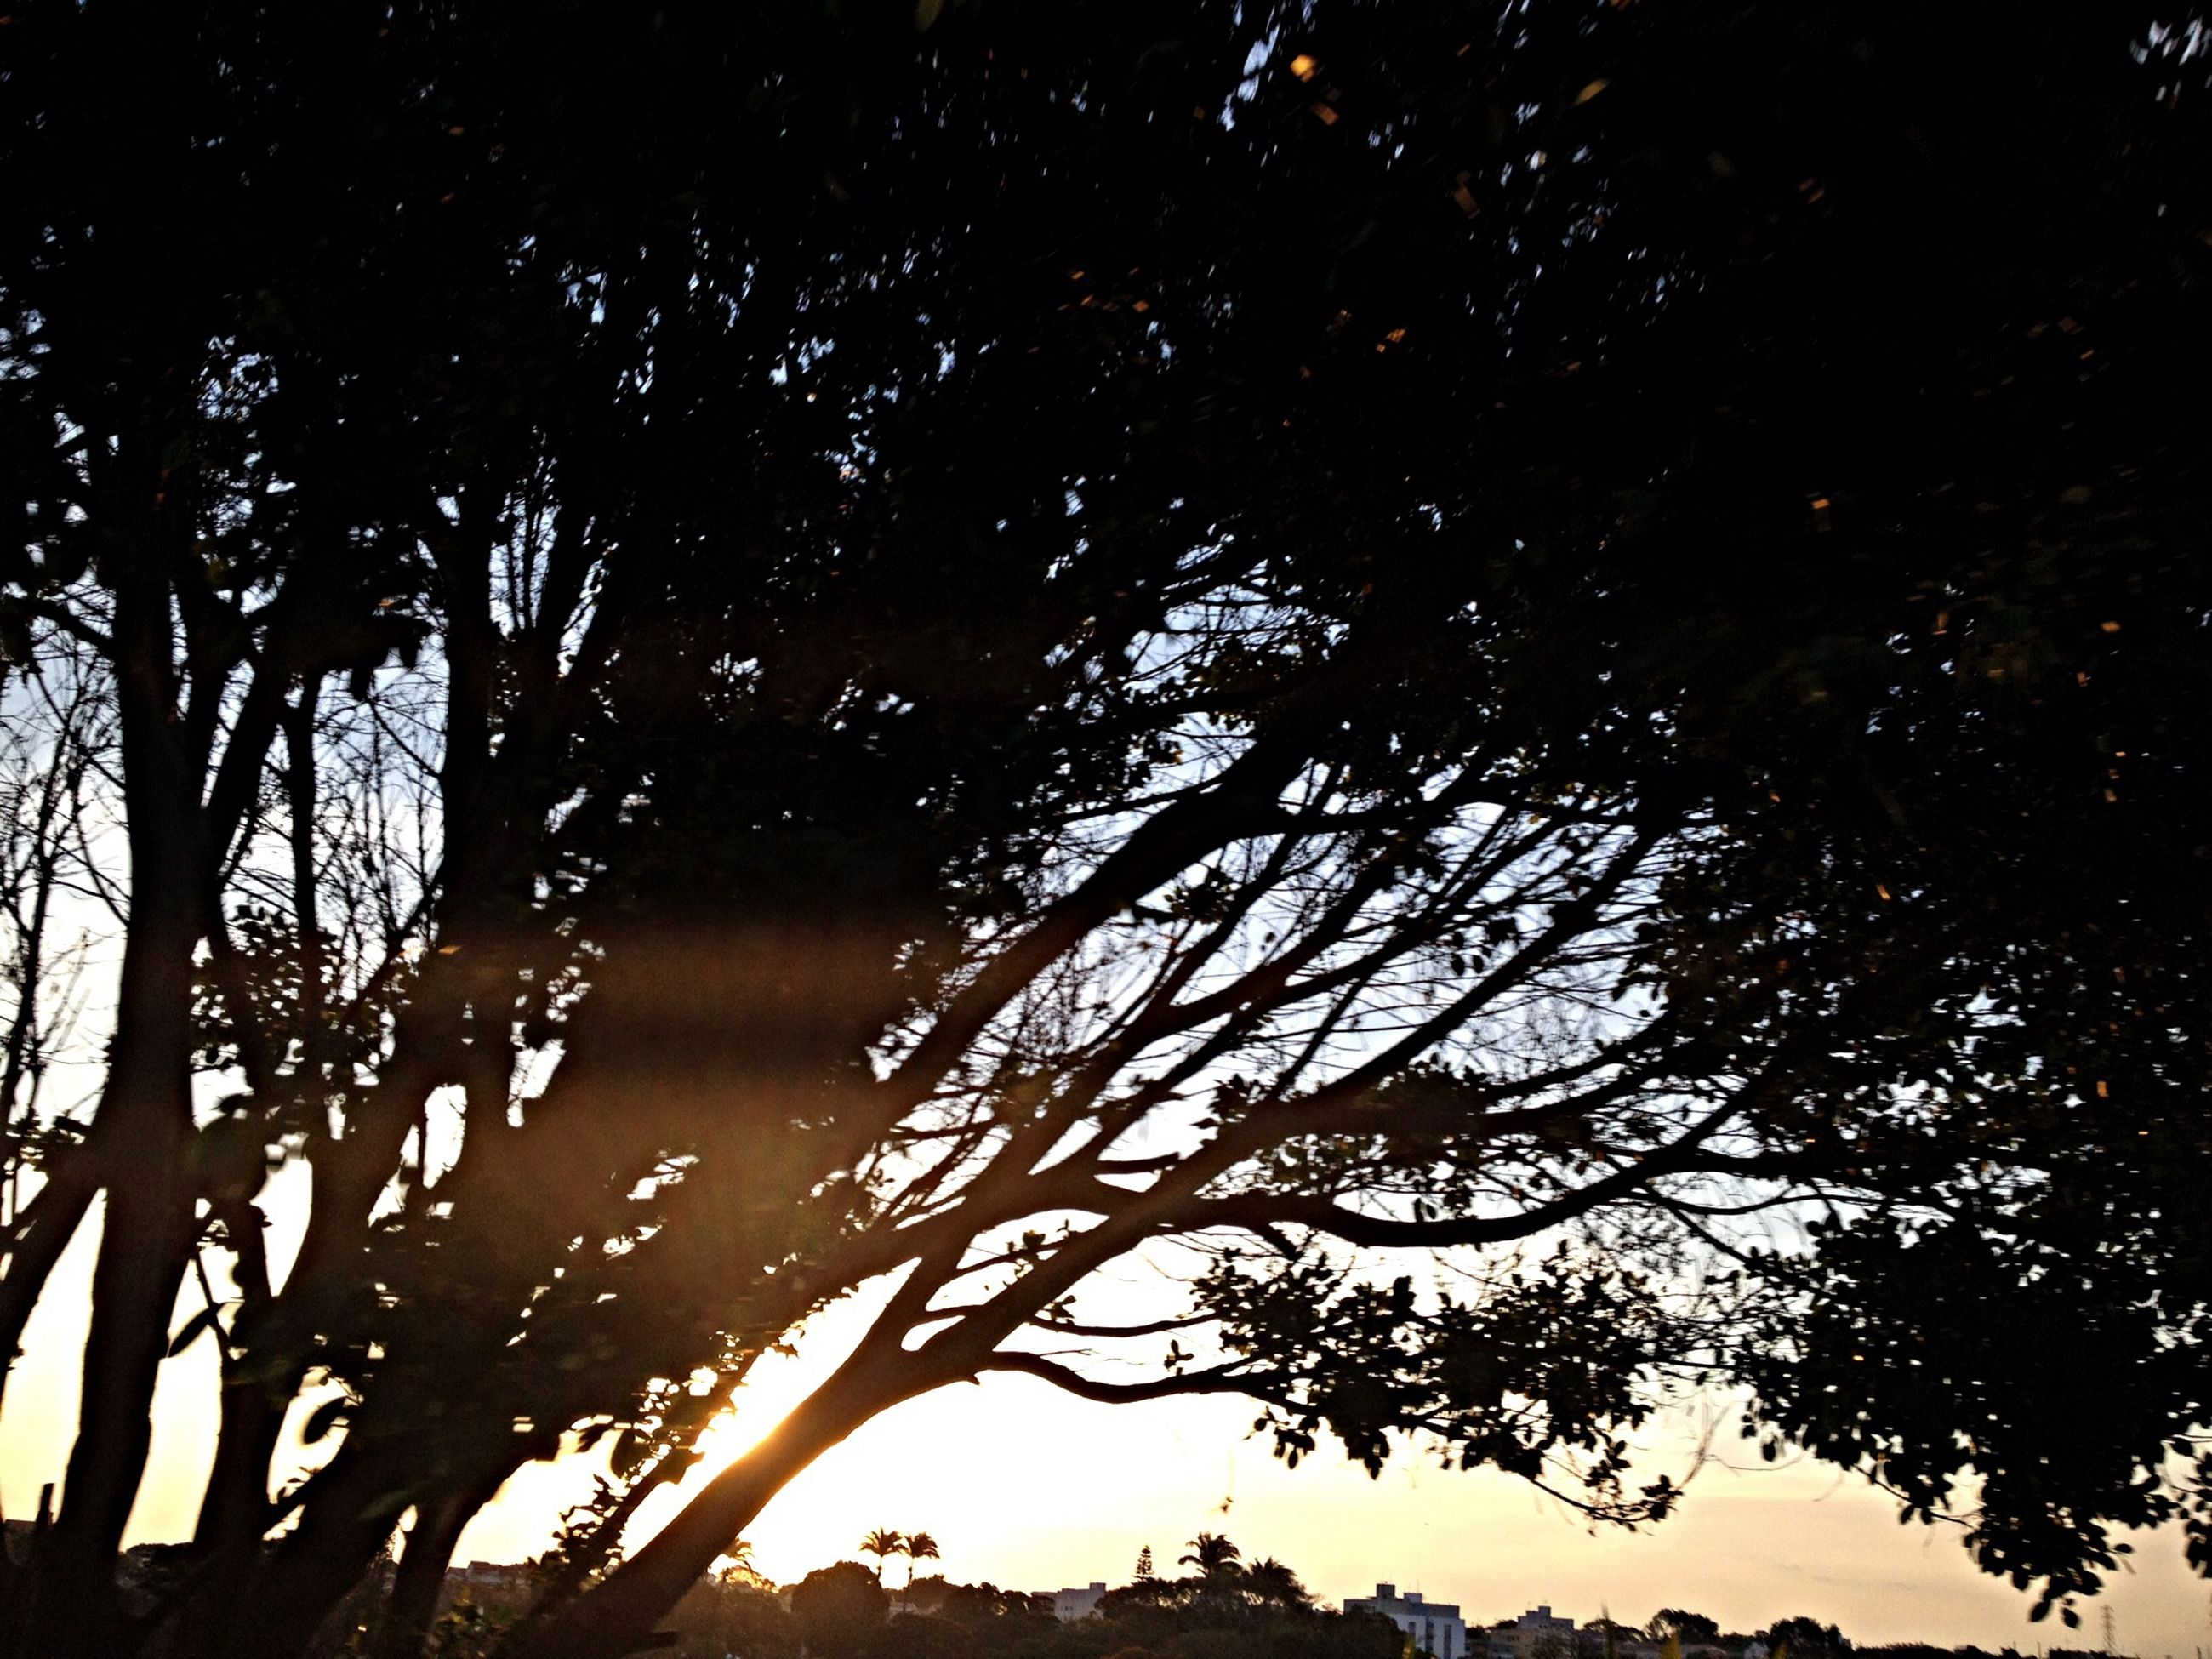 tree, silhouette, low angle view, branch, night, tranquility, growth, nature, beauty in nature, tranquil scene, scenics, sky, outdoors, tree trunk, idyllic, forest, no people, bare tree, clear sky, illuminated